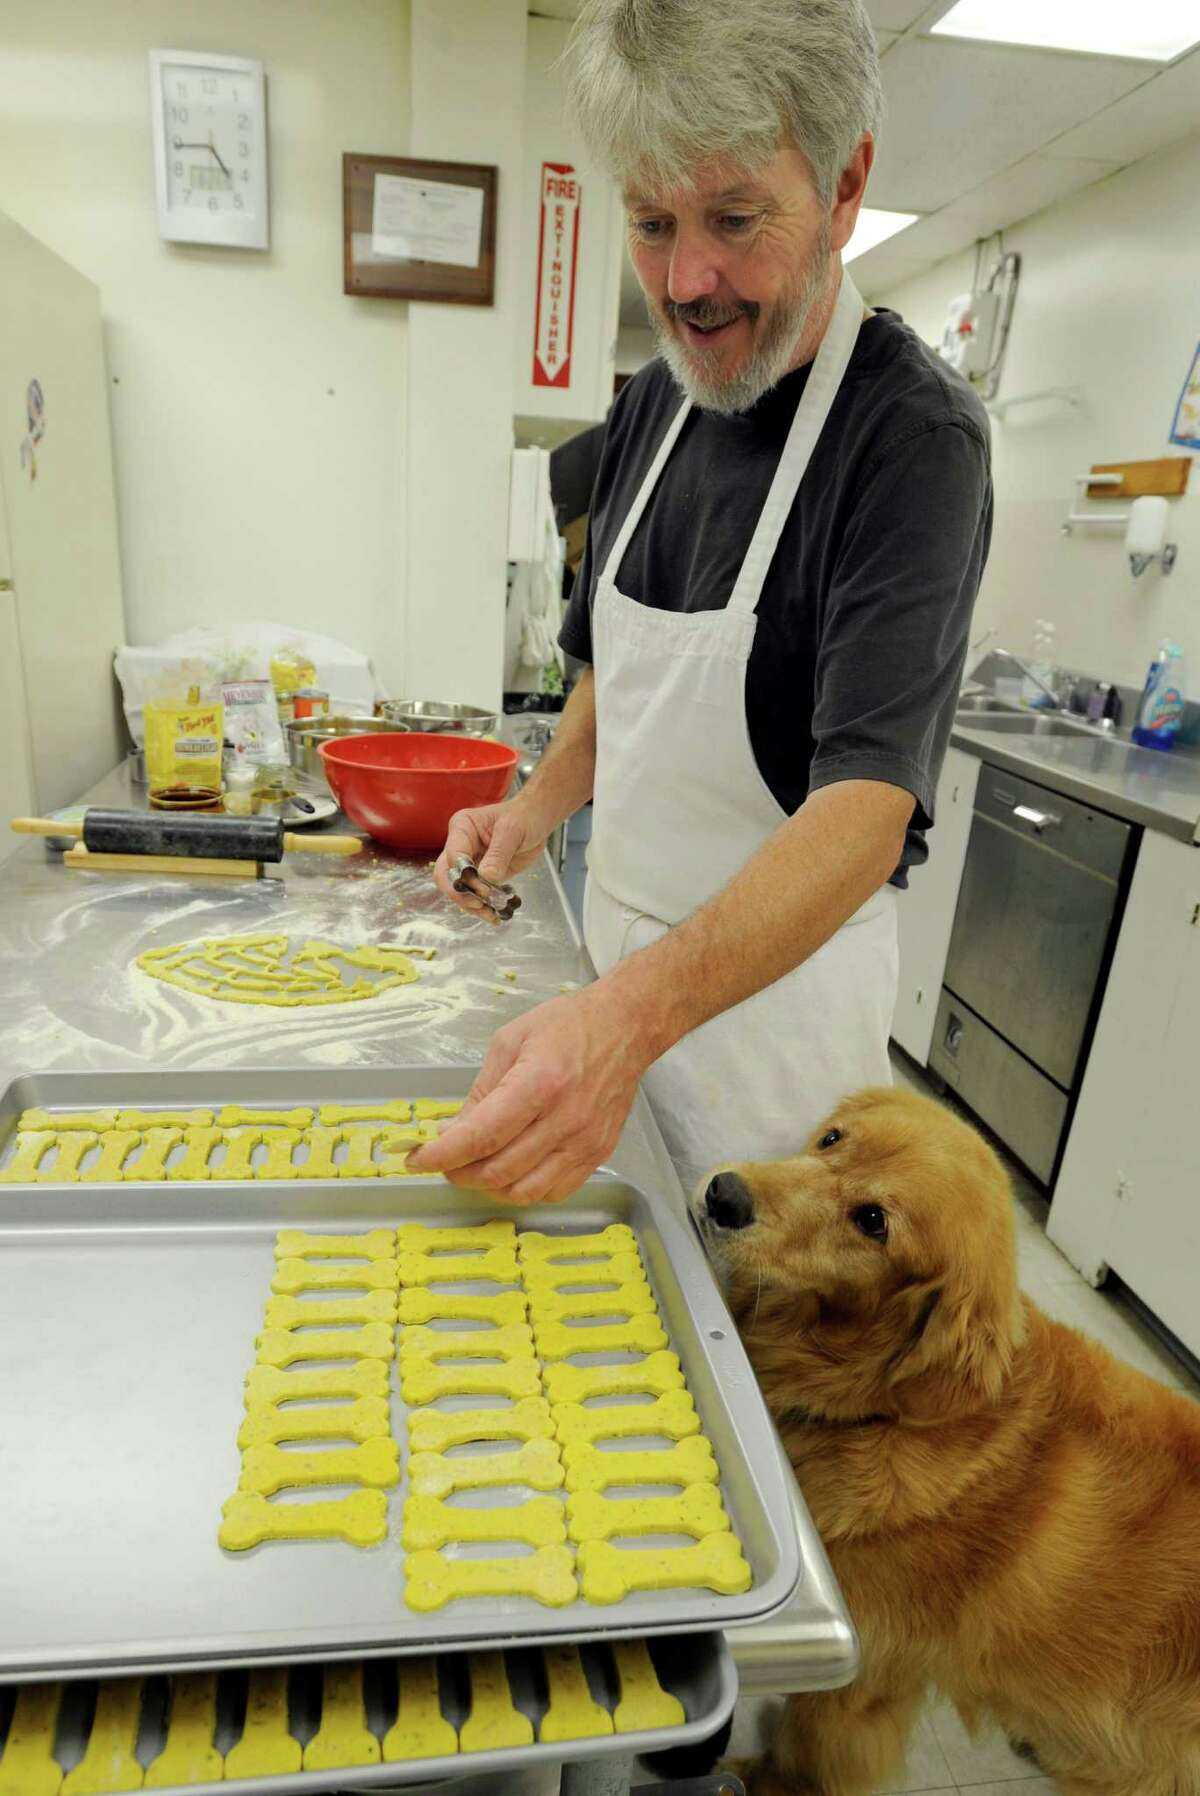 Paul Gallant, 55, of New Milford, Conn. owns and operates Paul's Custom Pet Food. His inspiration is his dog, Hunter, who was cured of cancer after a diet of organic pet foods and herbs. Wednesday, August 6, 2014.